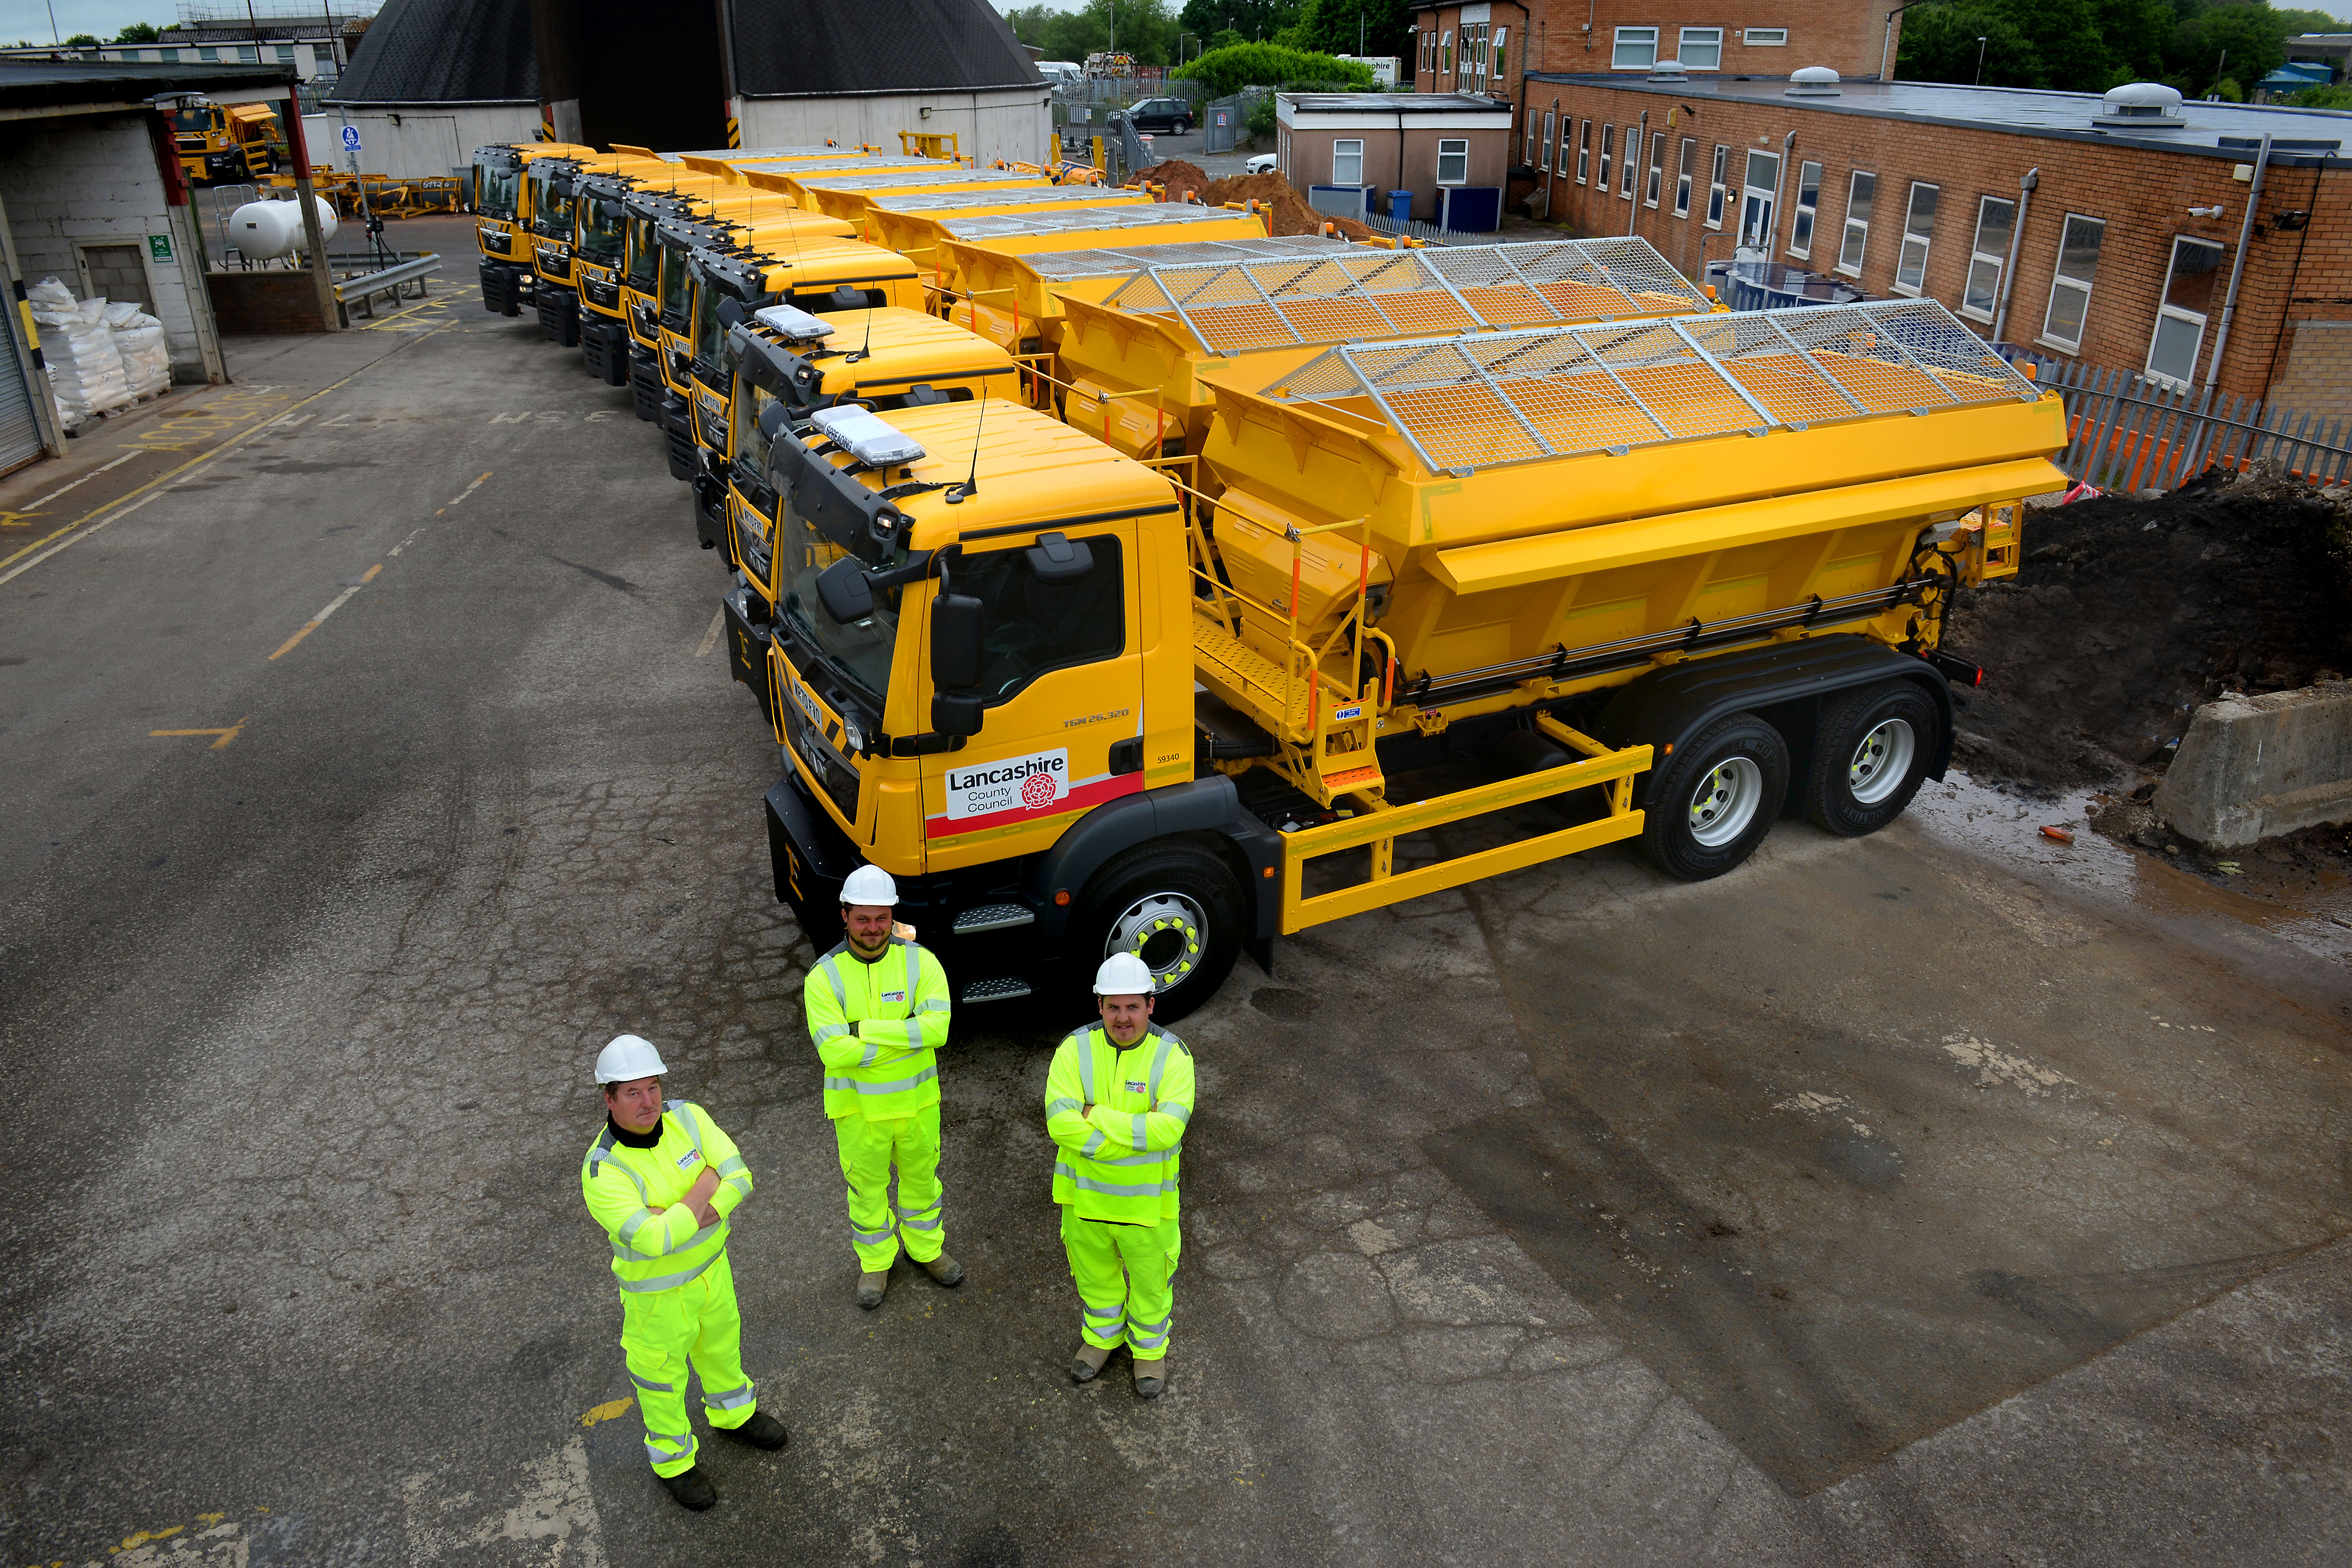 Would you like to name a gritter?